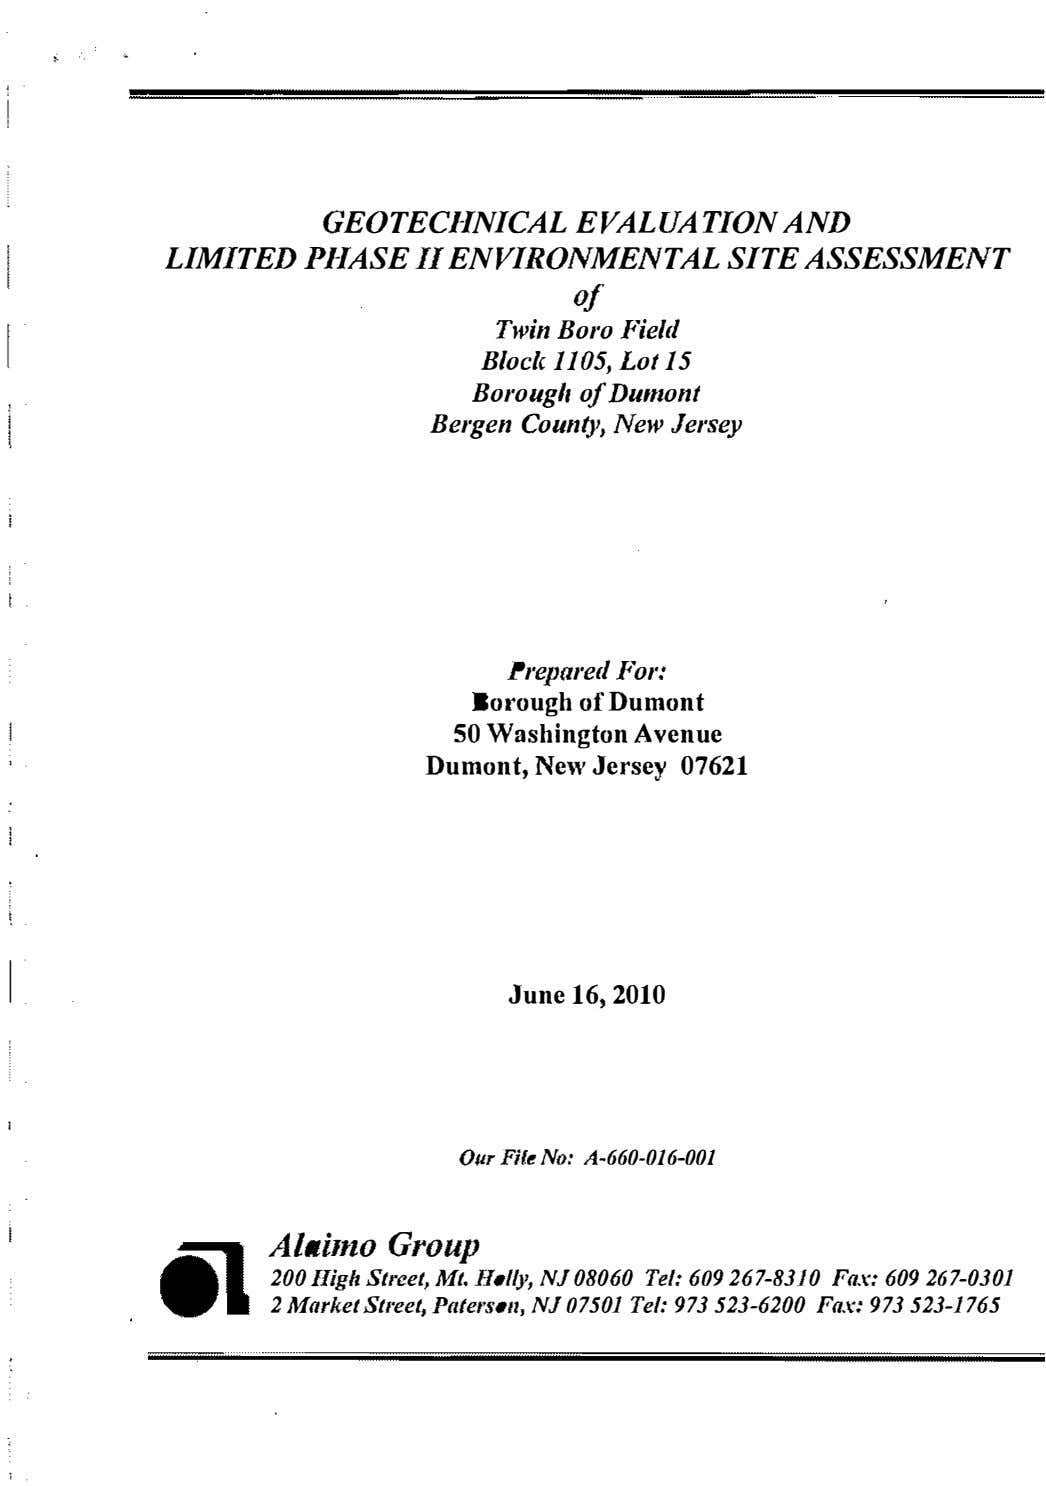 GEOTECHNICAL EVALUATION AND LIMITED PHASE II ENVIRONMENTAL SITE ASSESSMENT of Twin Boro Field Block 1105,